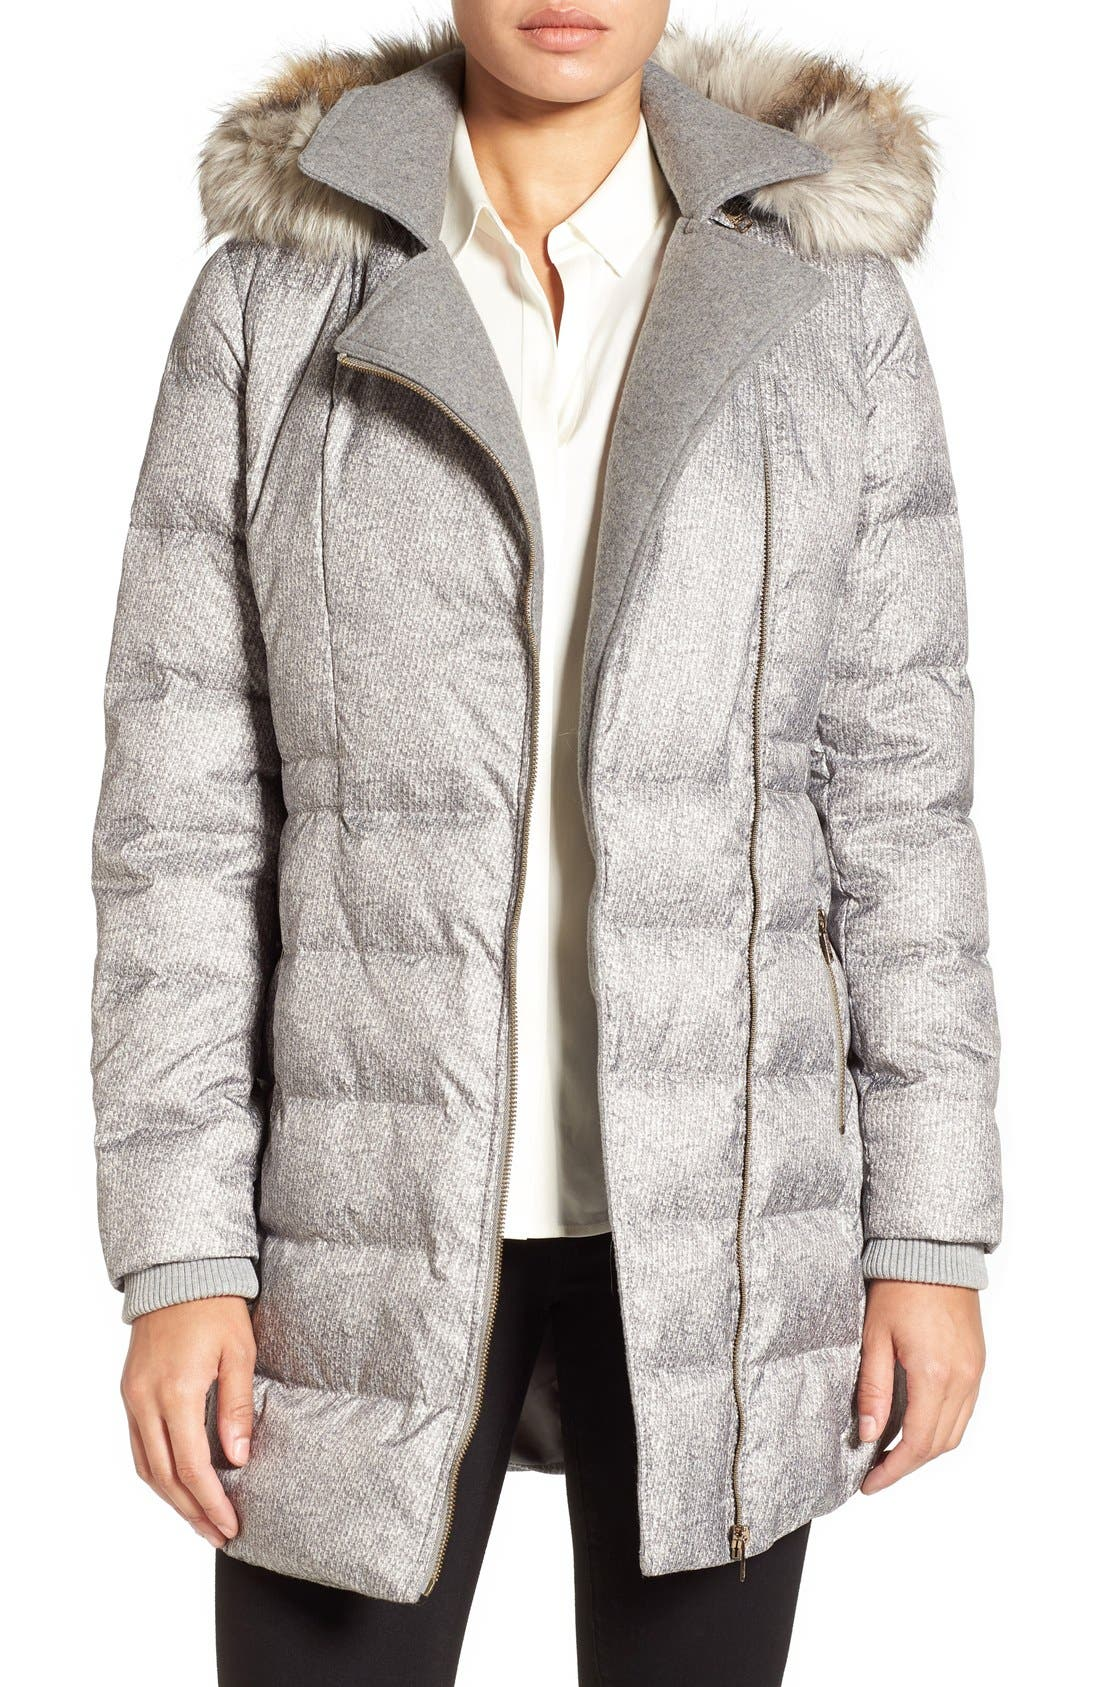 Alternate Image 1 Selected - Catherine Catherine Malandrino Print Quilted Coat with Faux Fur Trim